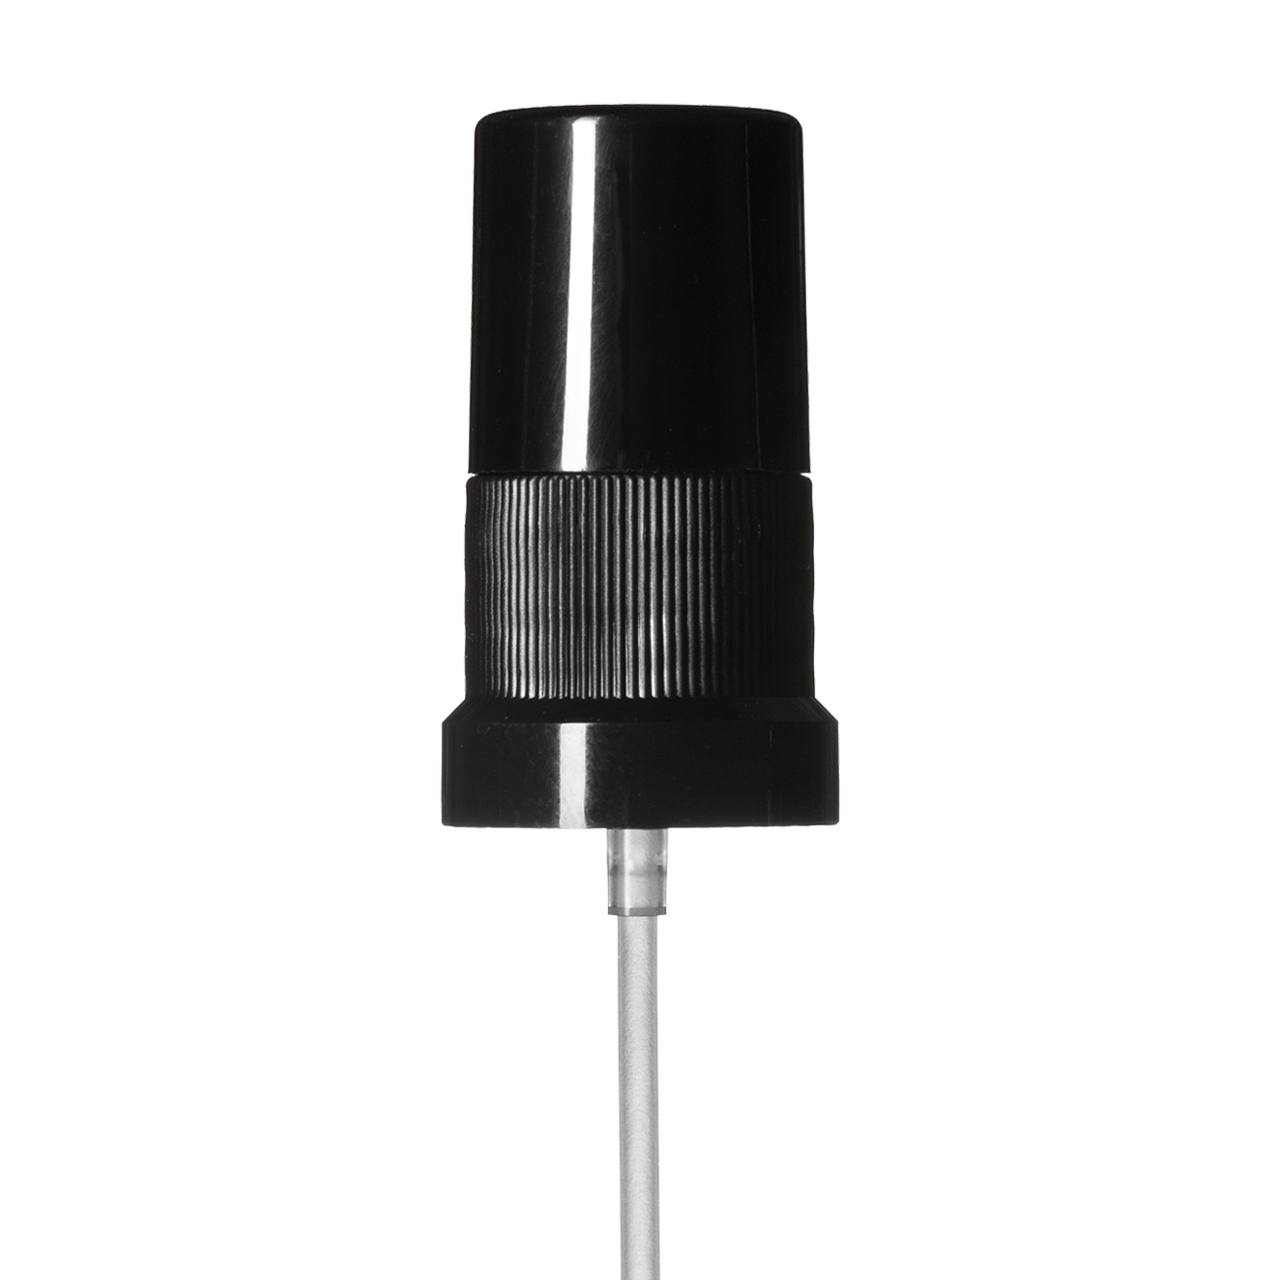 Mist sprayer Classic stepped, DIN18, PP, black, ribbed, dose 0.10 ml, with black overcap (for Orion 100 ml)